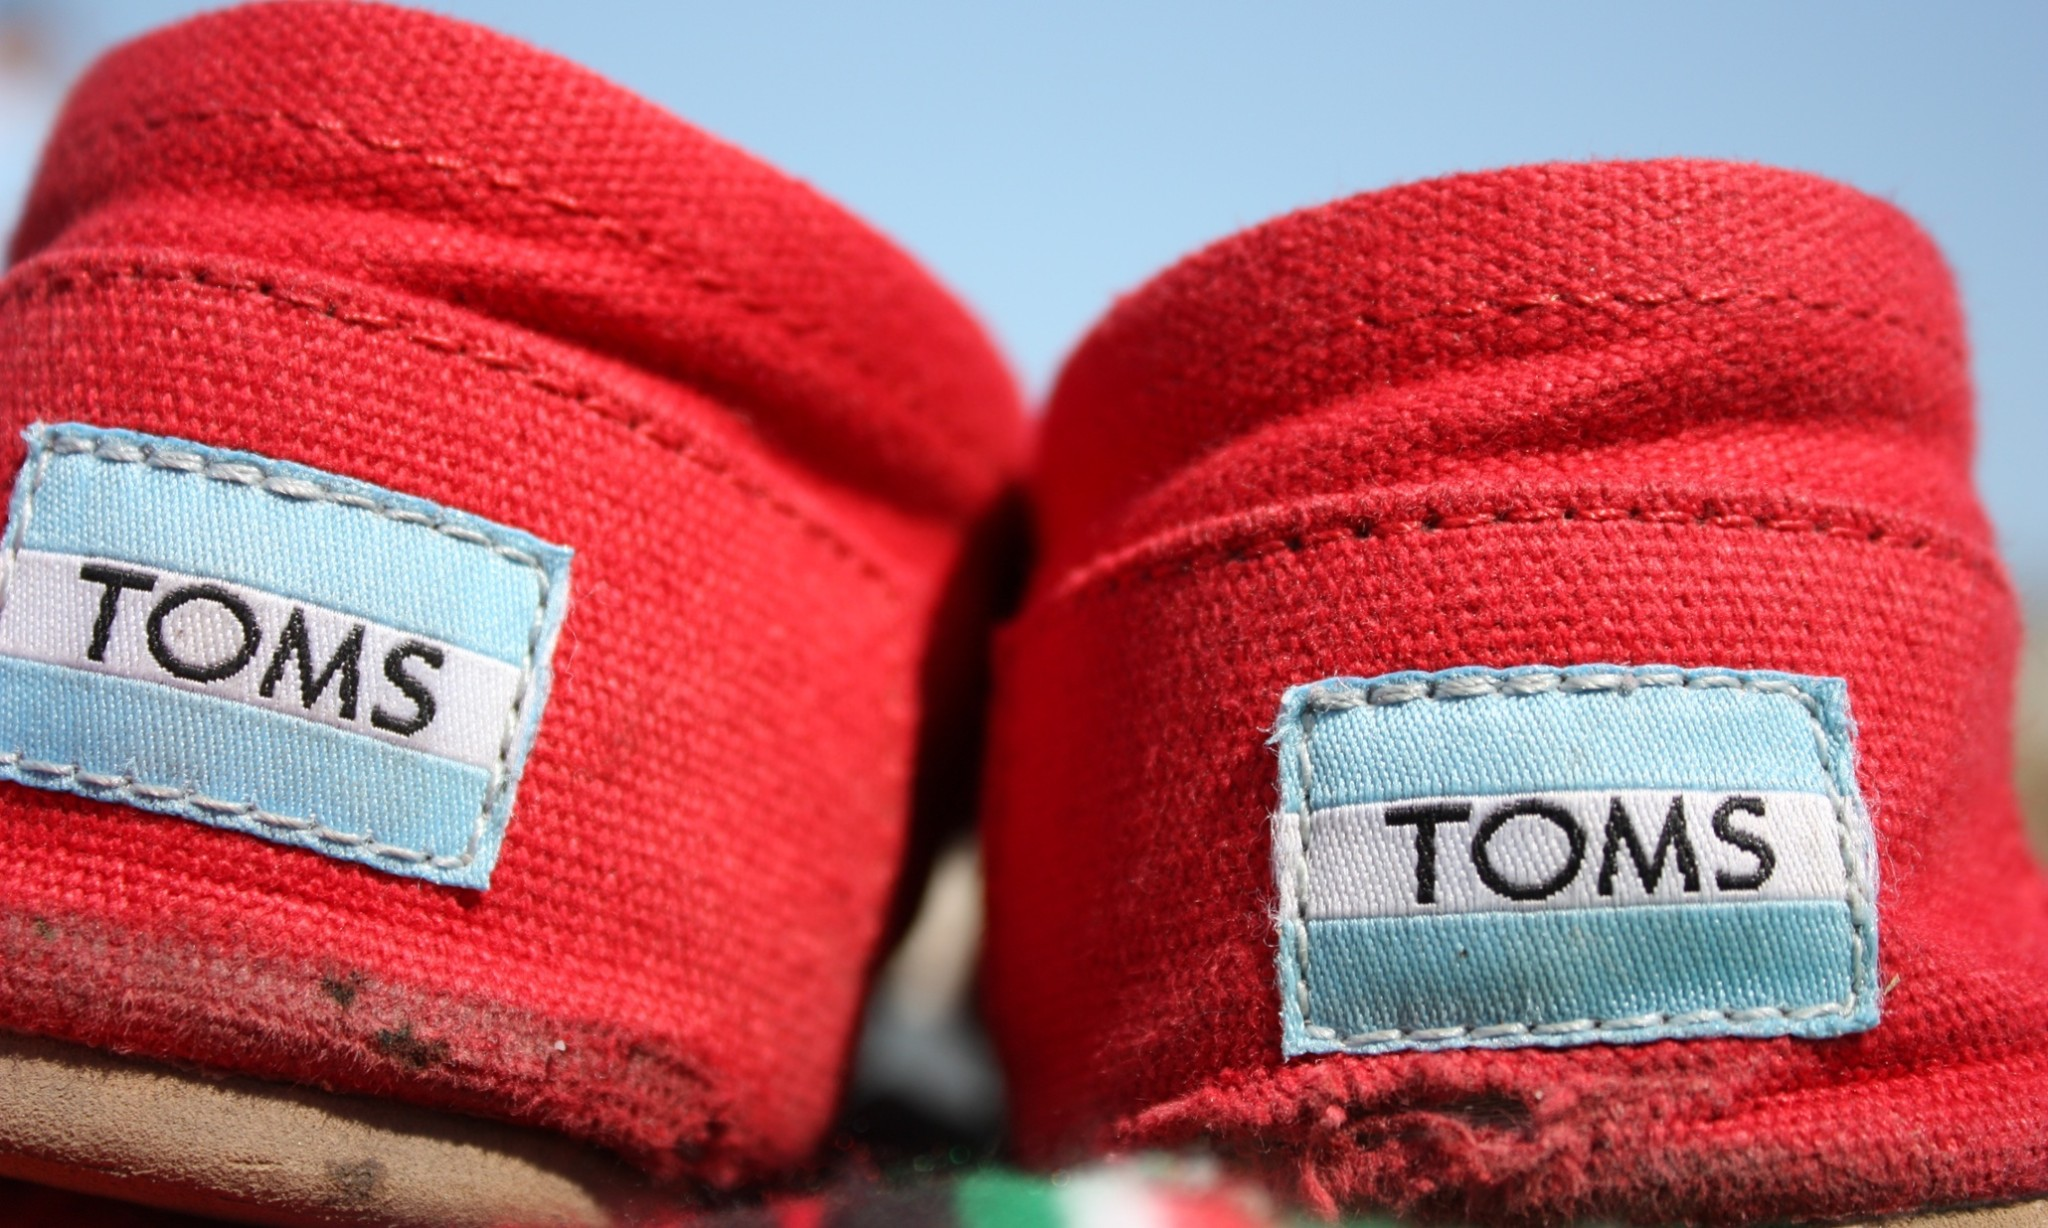 Toms founder: 'There is real opportunity to address the world's needs'